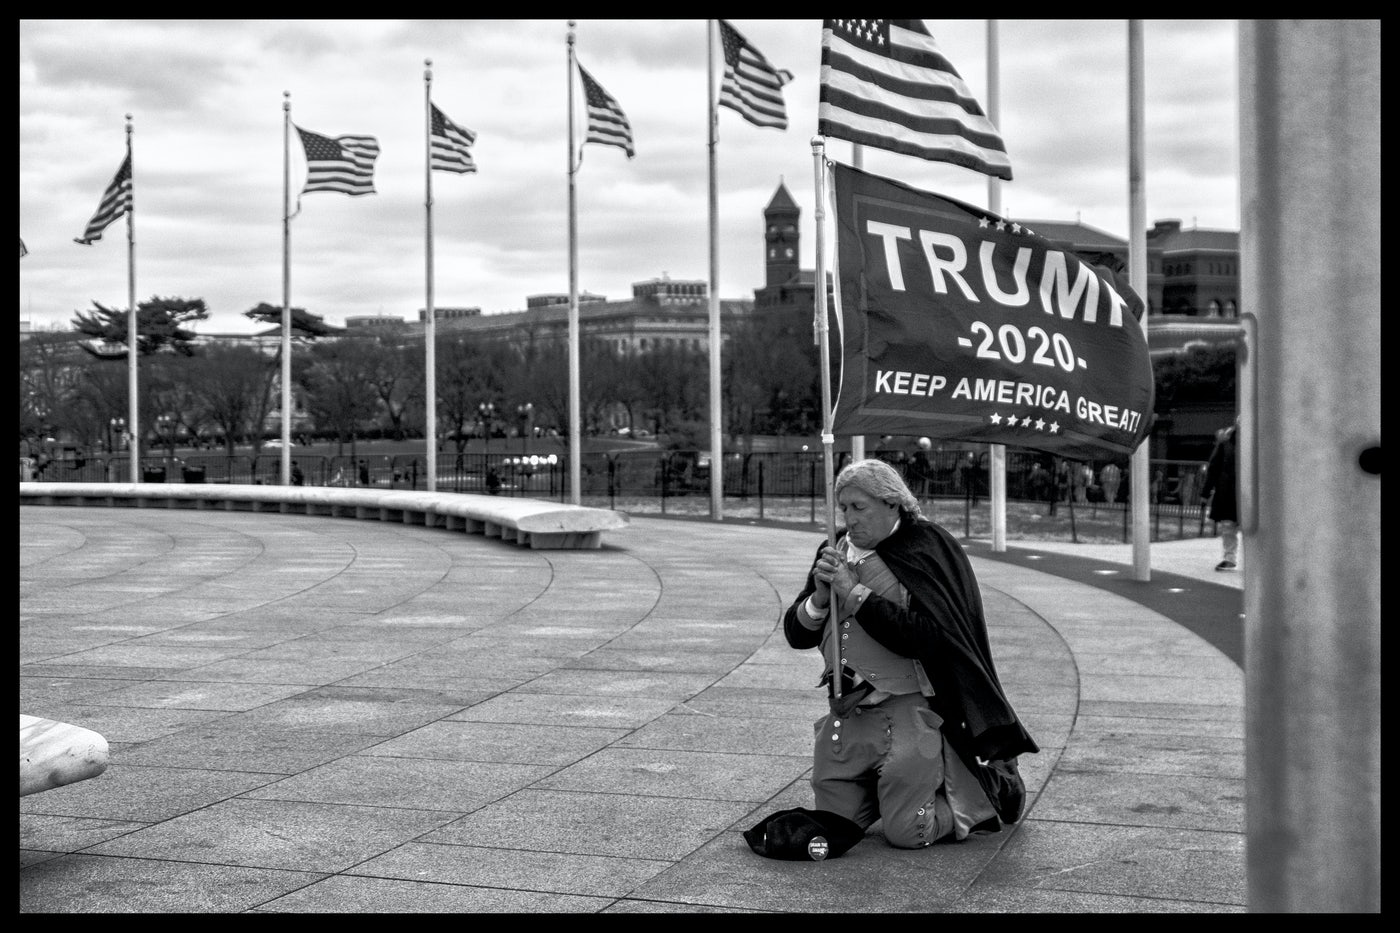 A man in a Revolutionary War costume kneels on the ground, clutching a Trump banner.